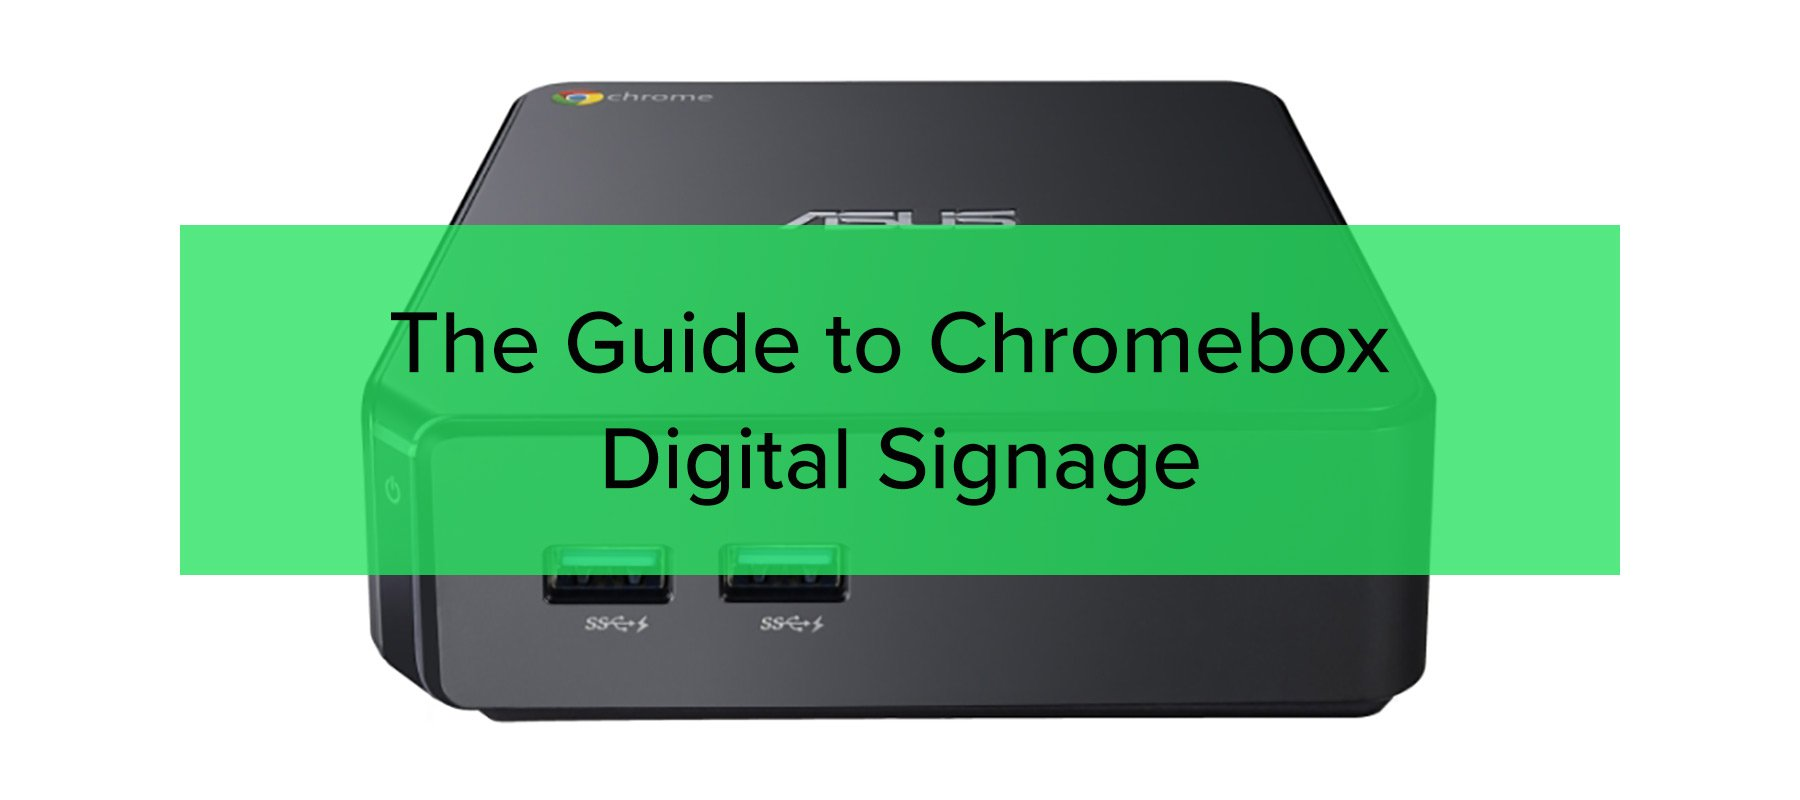 The Guide To Chromebox Digital Signage